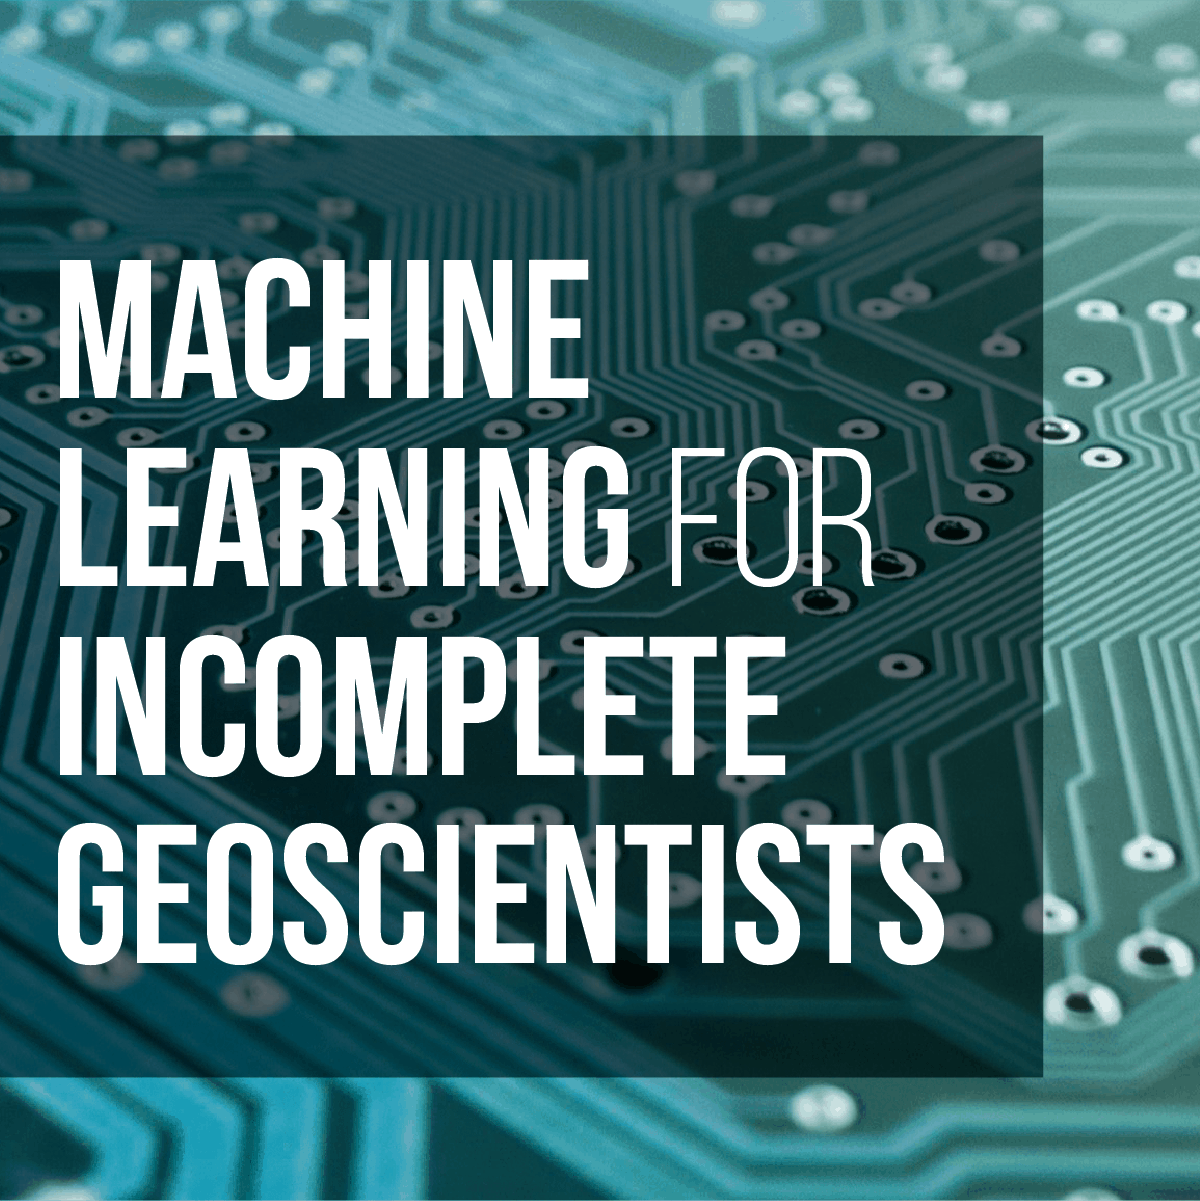 Machine Learning for Incomplete Geoscientists